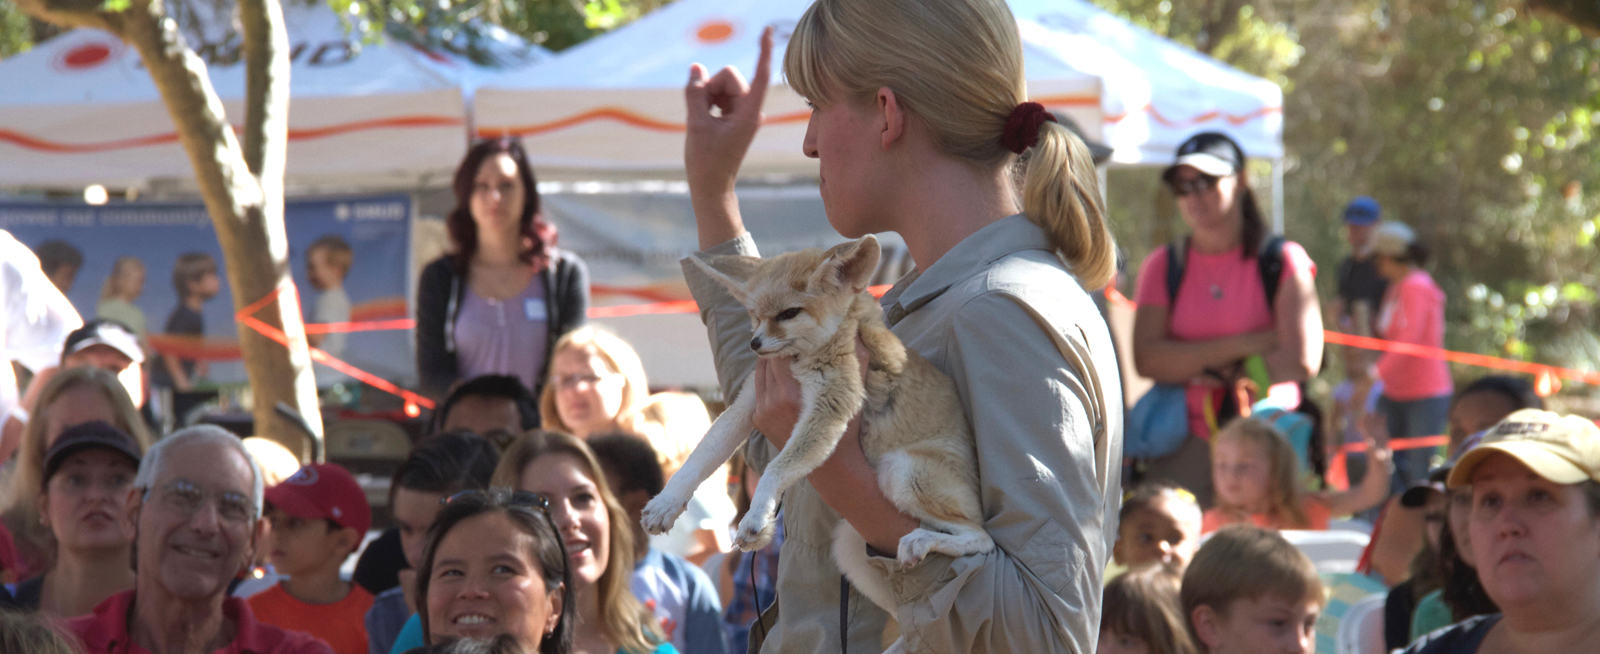 NatureFest Features Live Animal Shows